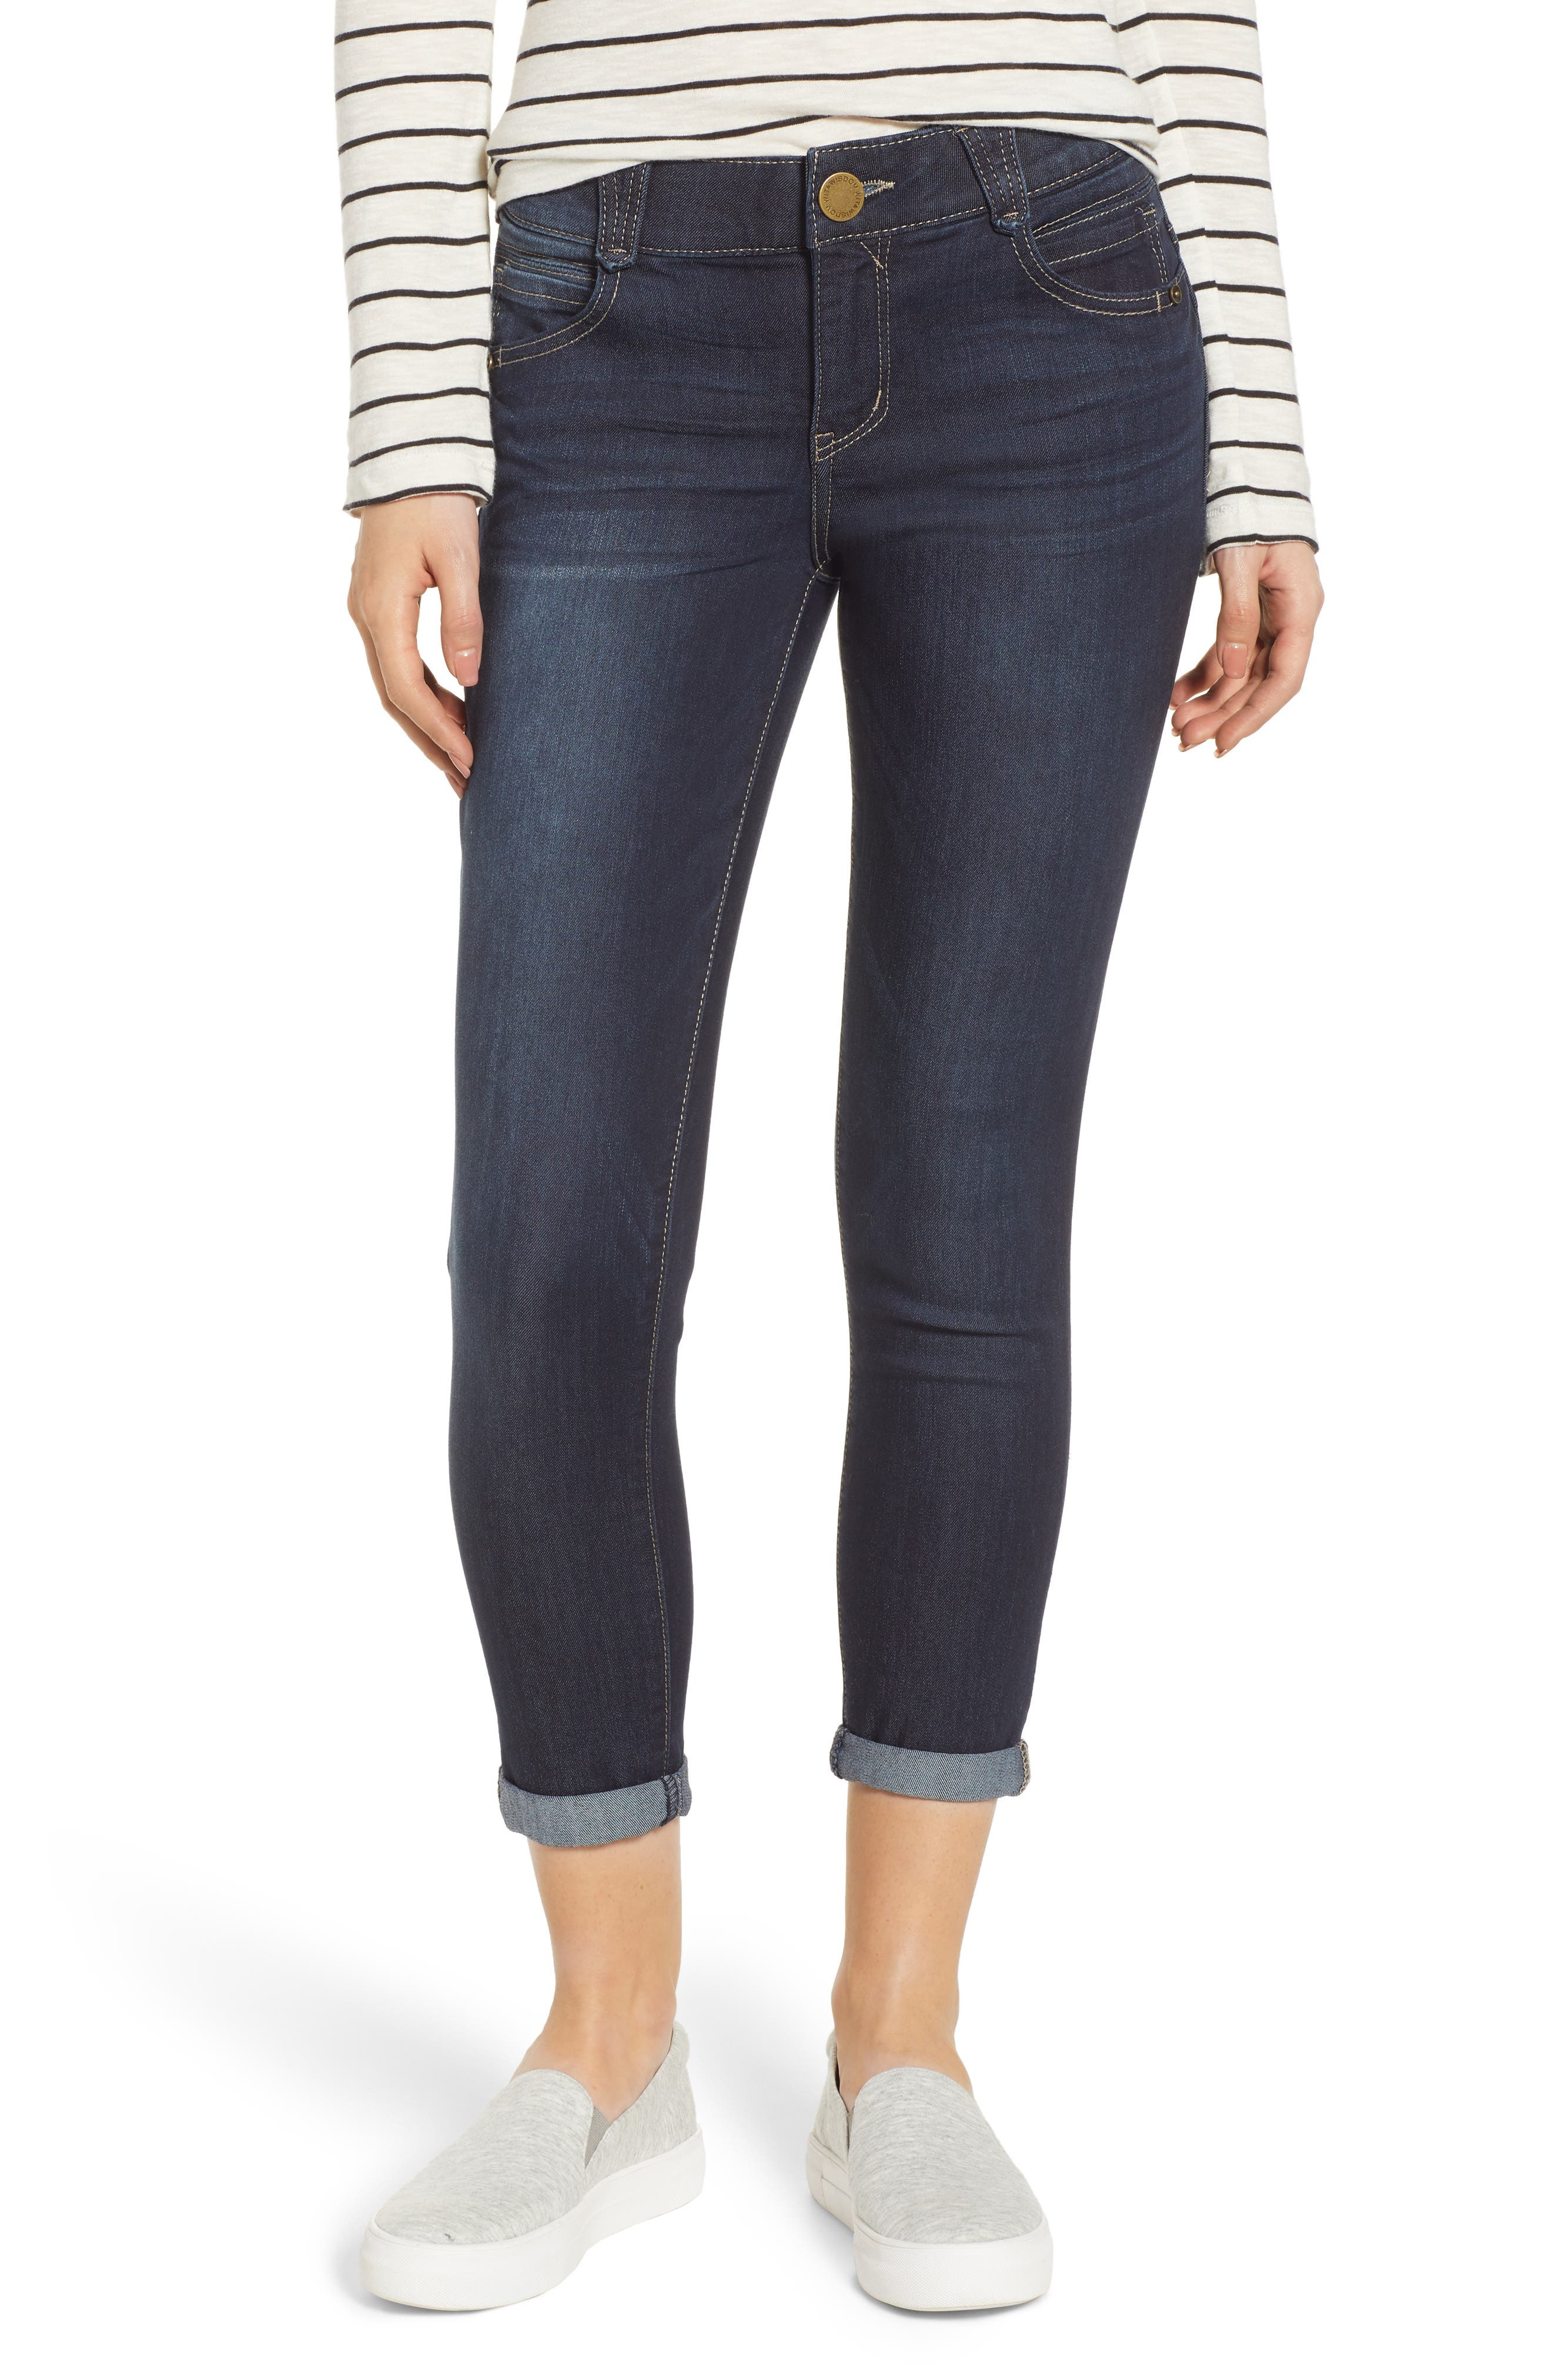 Ab-Solution Ankle Skimmer Jeans,                             Main thumbnail 1, color,                             INDIGO